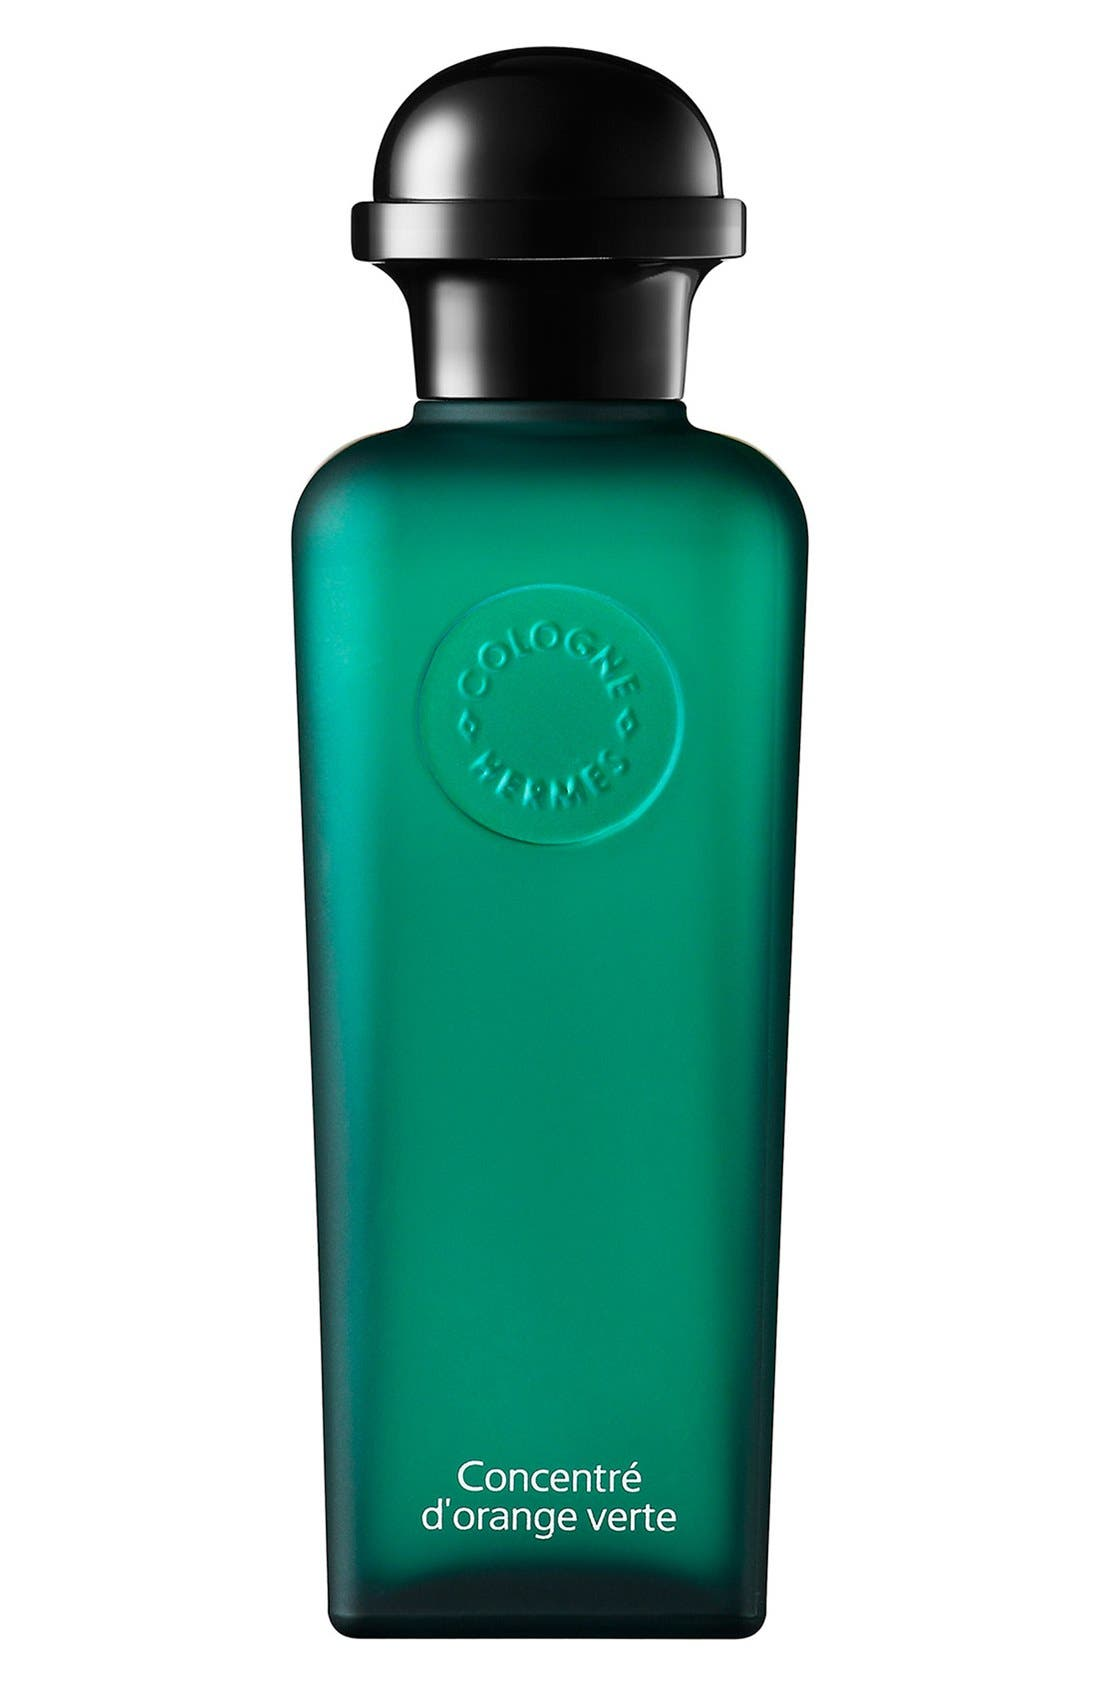 Hermès Eau d'orange verte Concentré d'orange verte - Eau de toilette